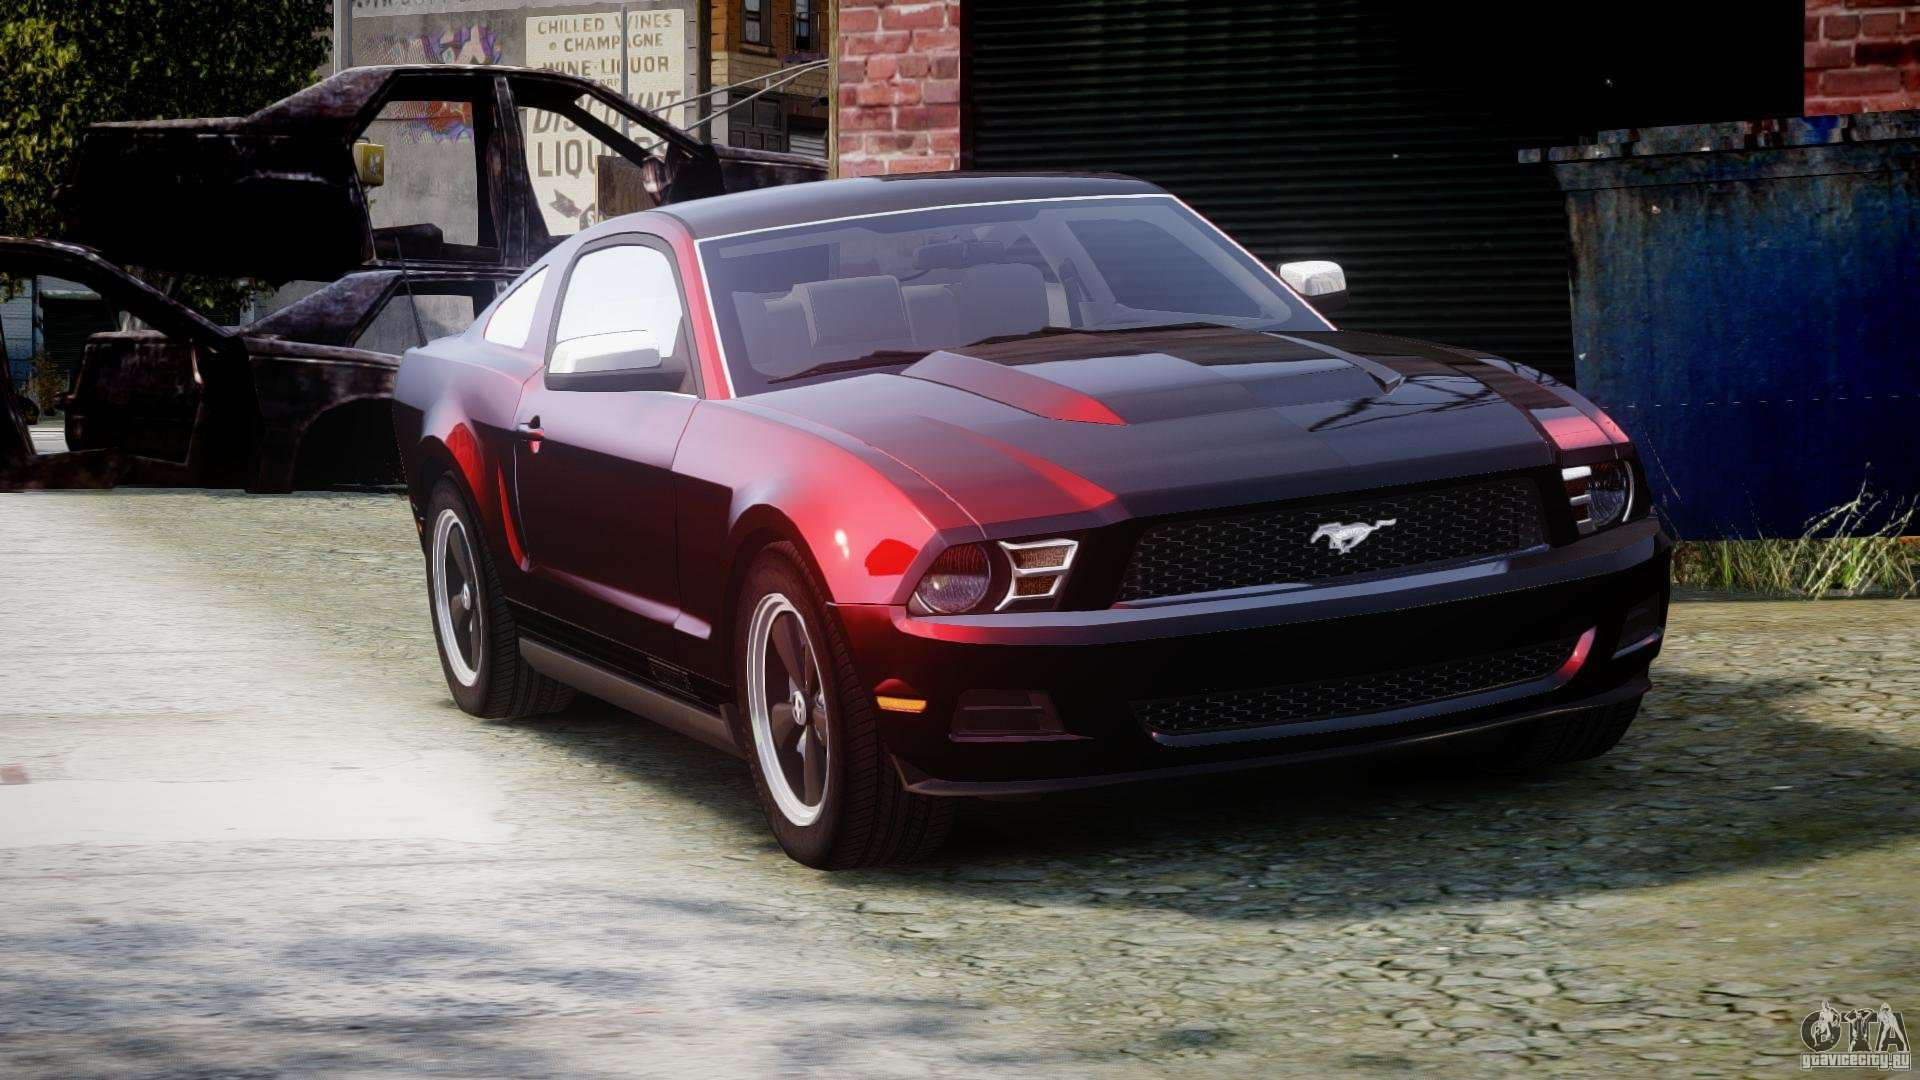 mustang v6 ford chrome gta v1 lod cars supports optimized functions basic engine game